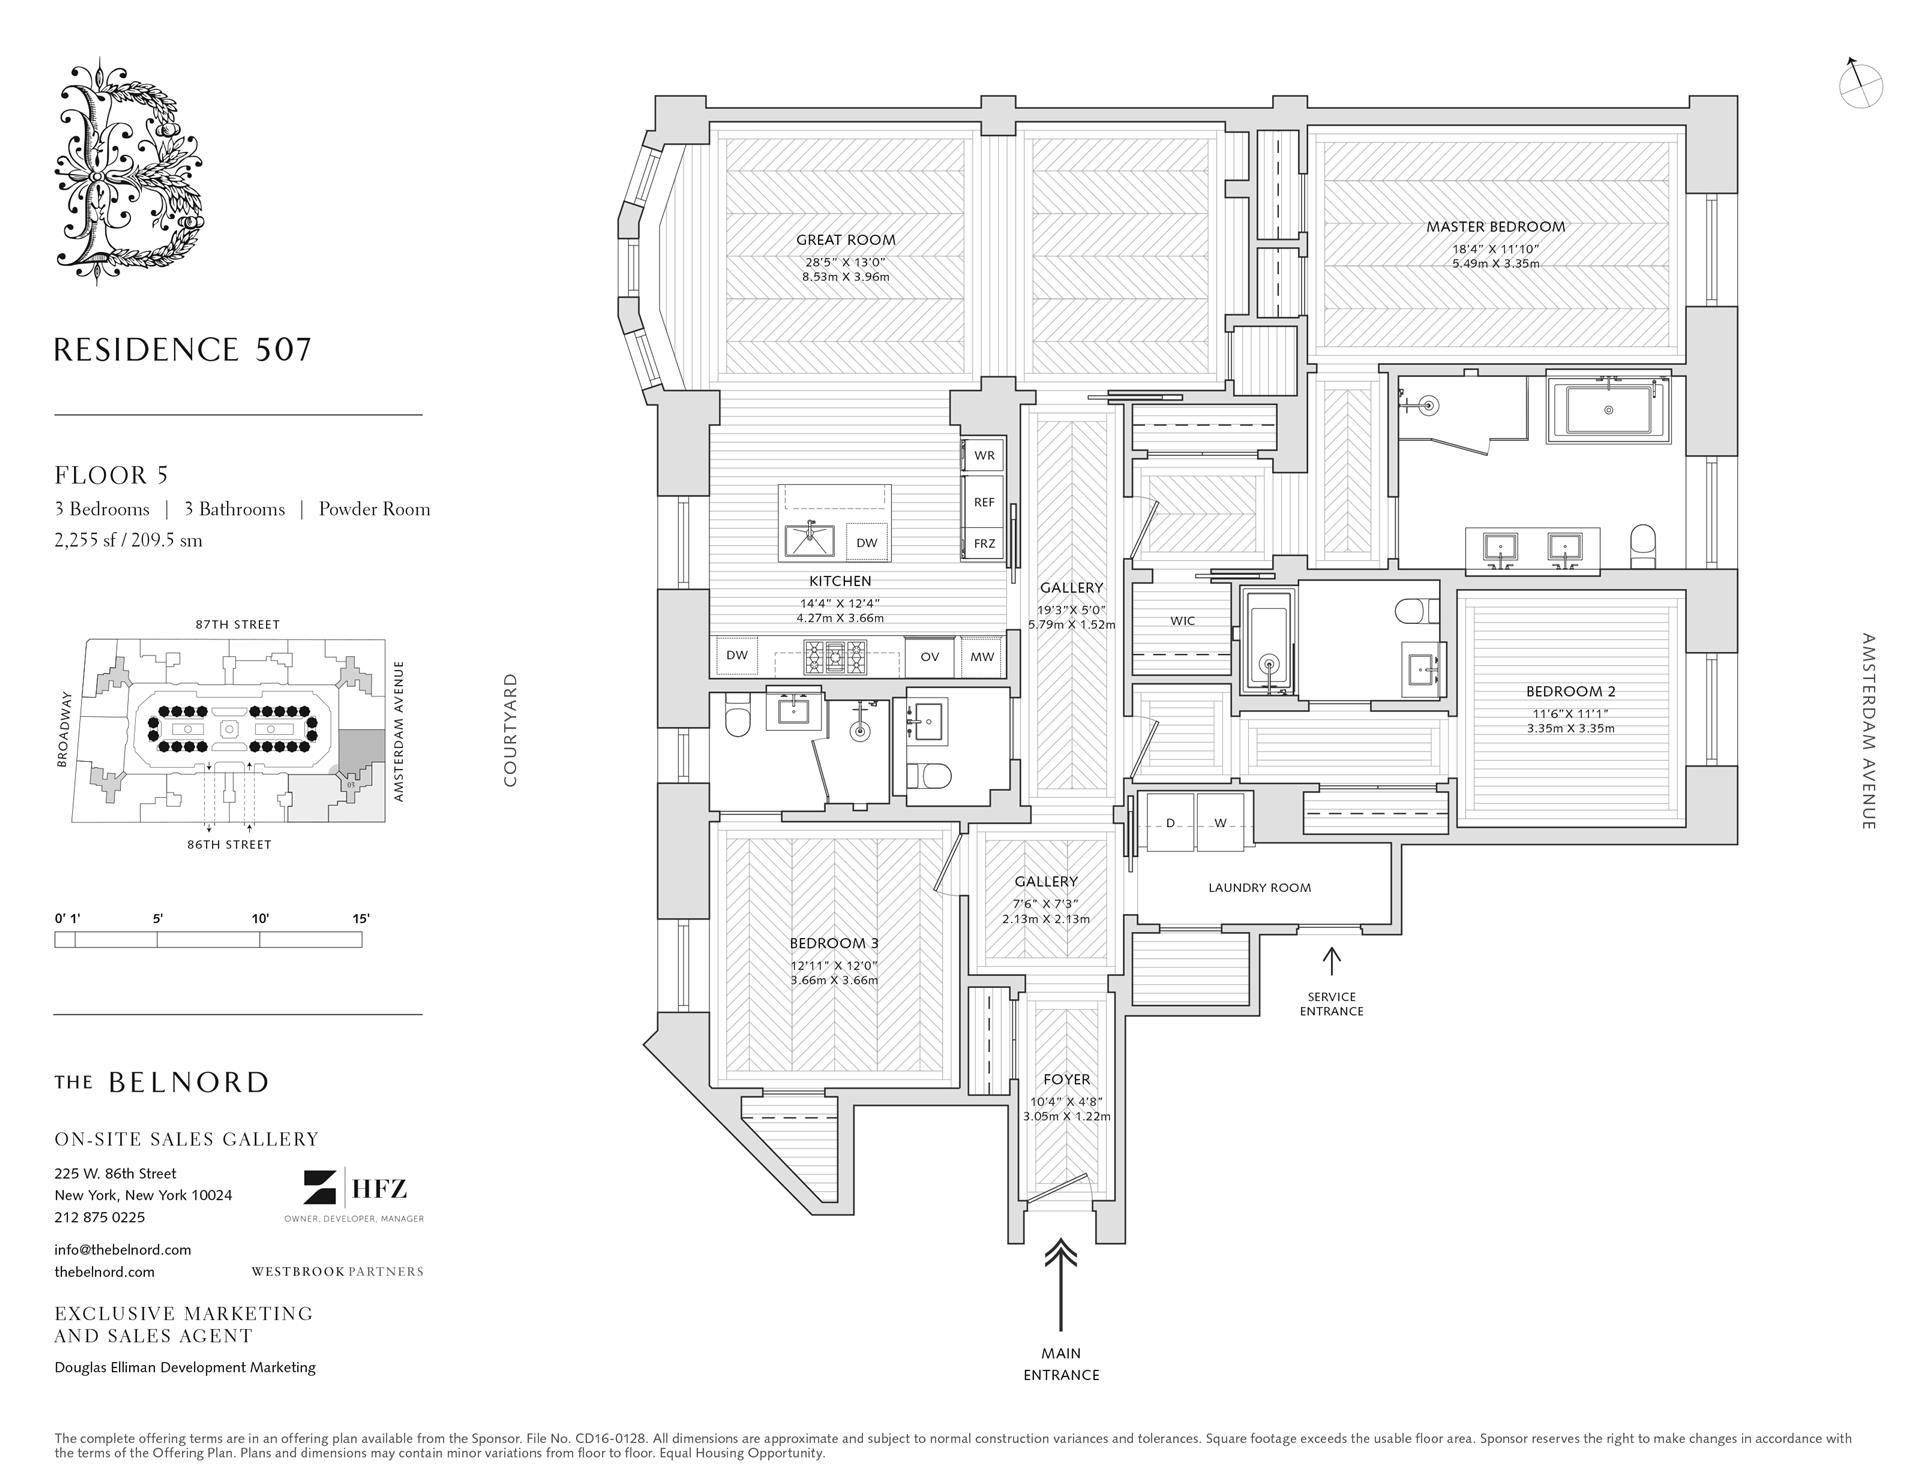 Floor plan of The Belnord, 225 West 86th St, 507 - Upper West Side, New York